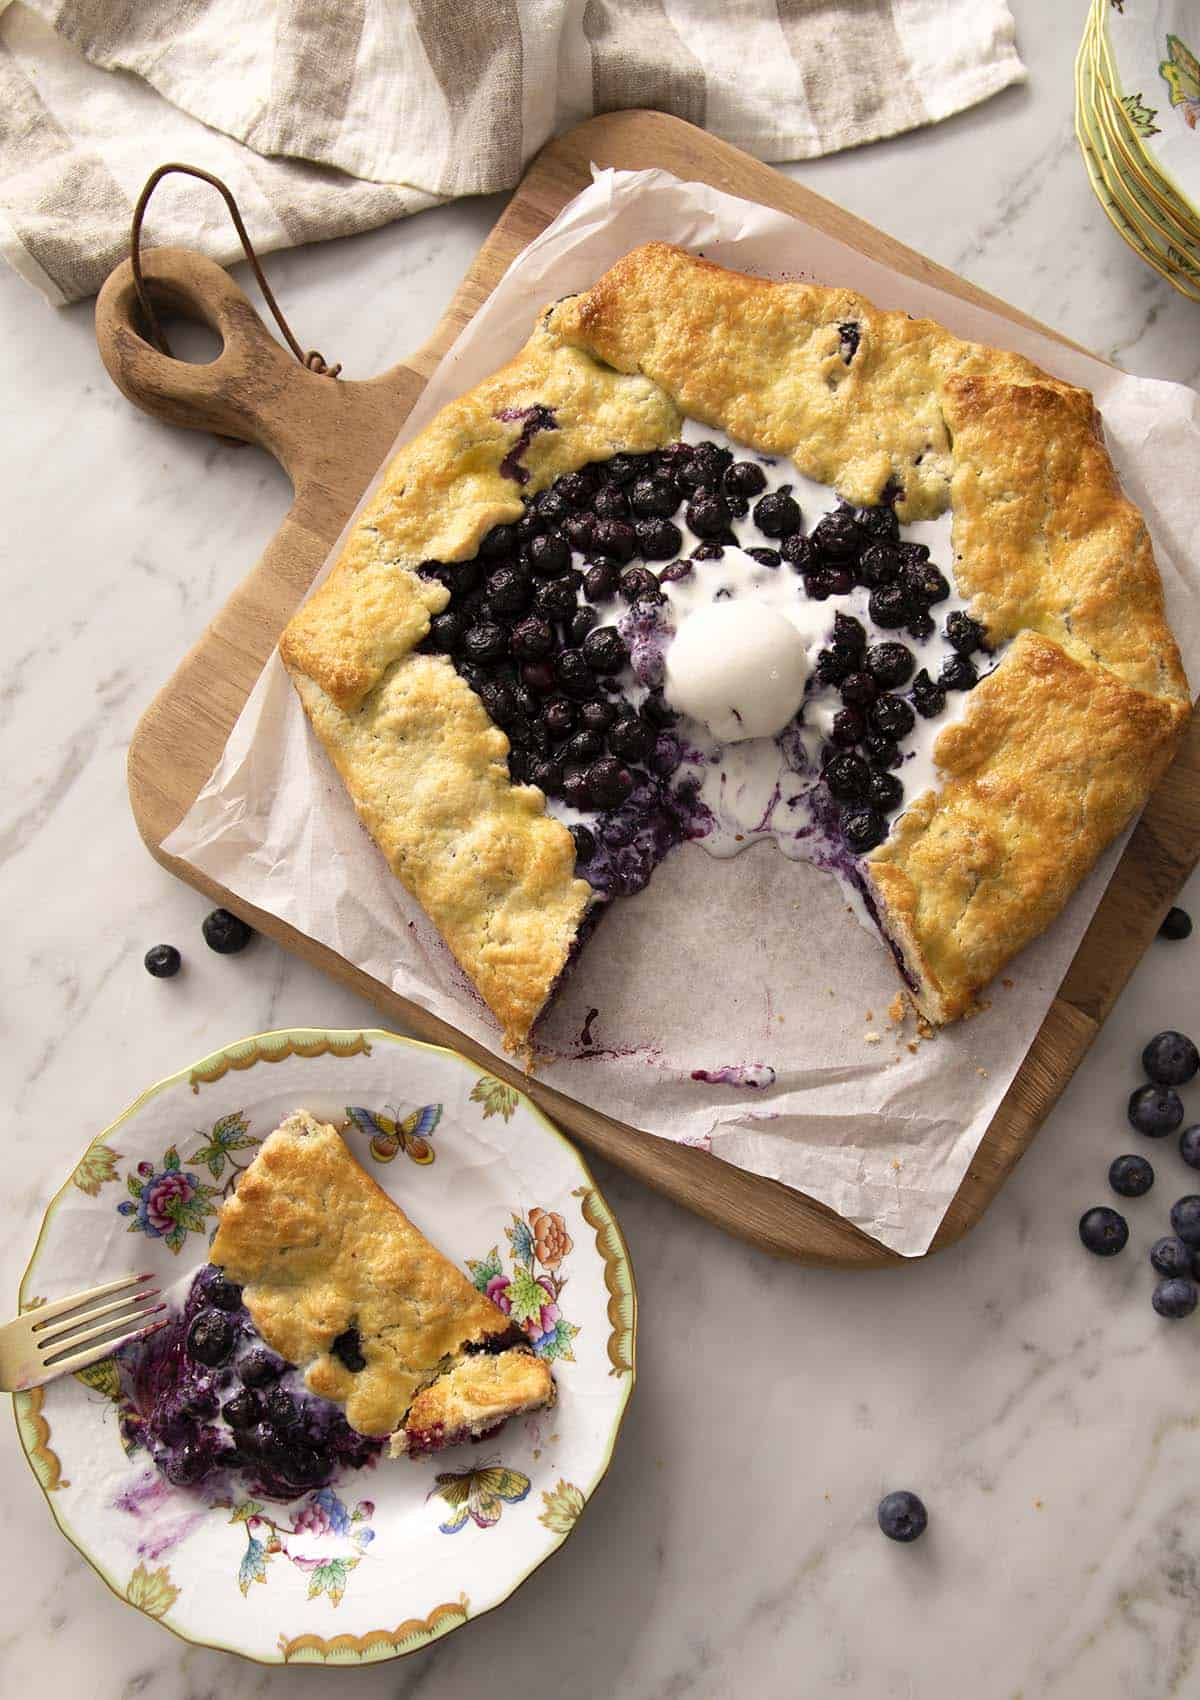 A blueberry galette with a piece removed and on a plate.